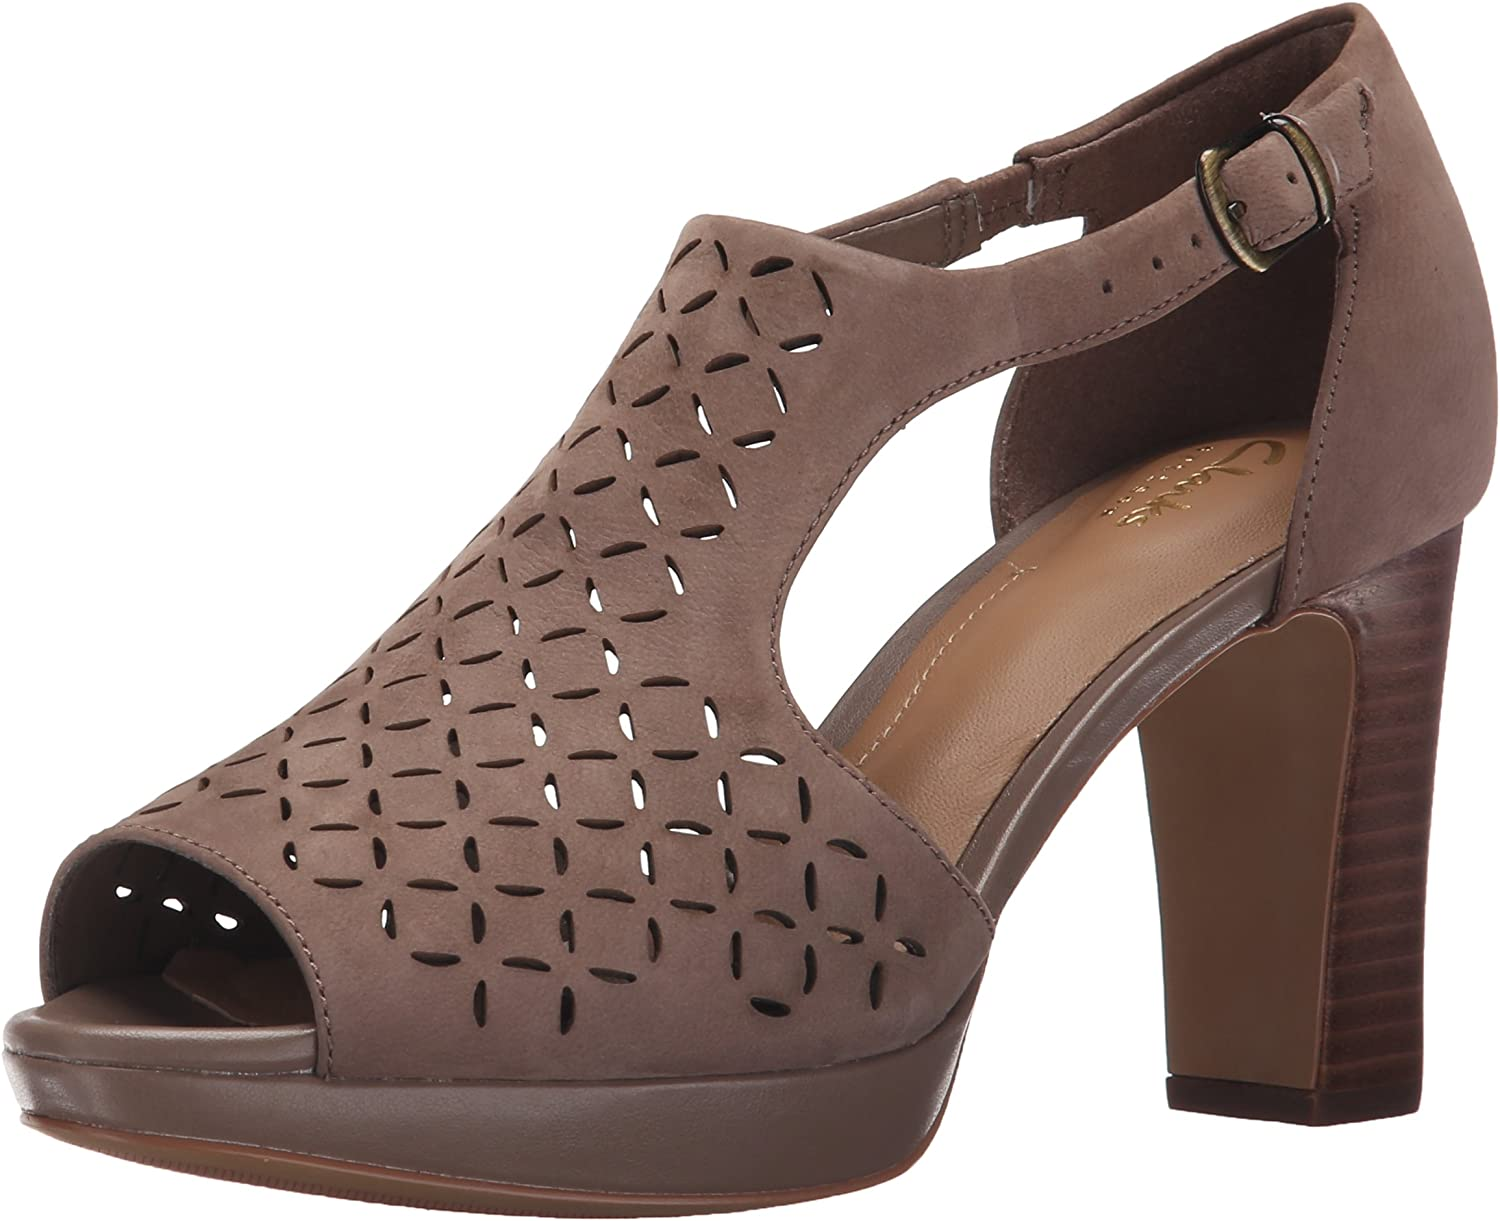 Clarks Women's Jenness Energy Dress Sandal